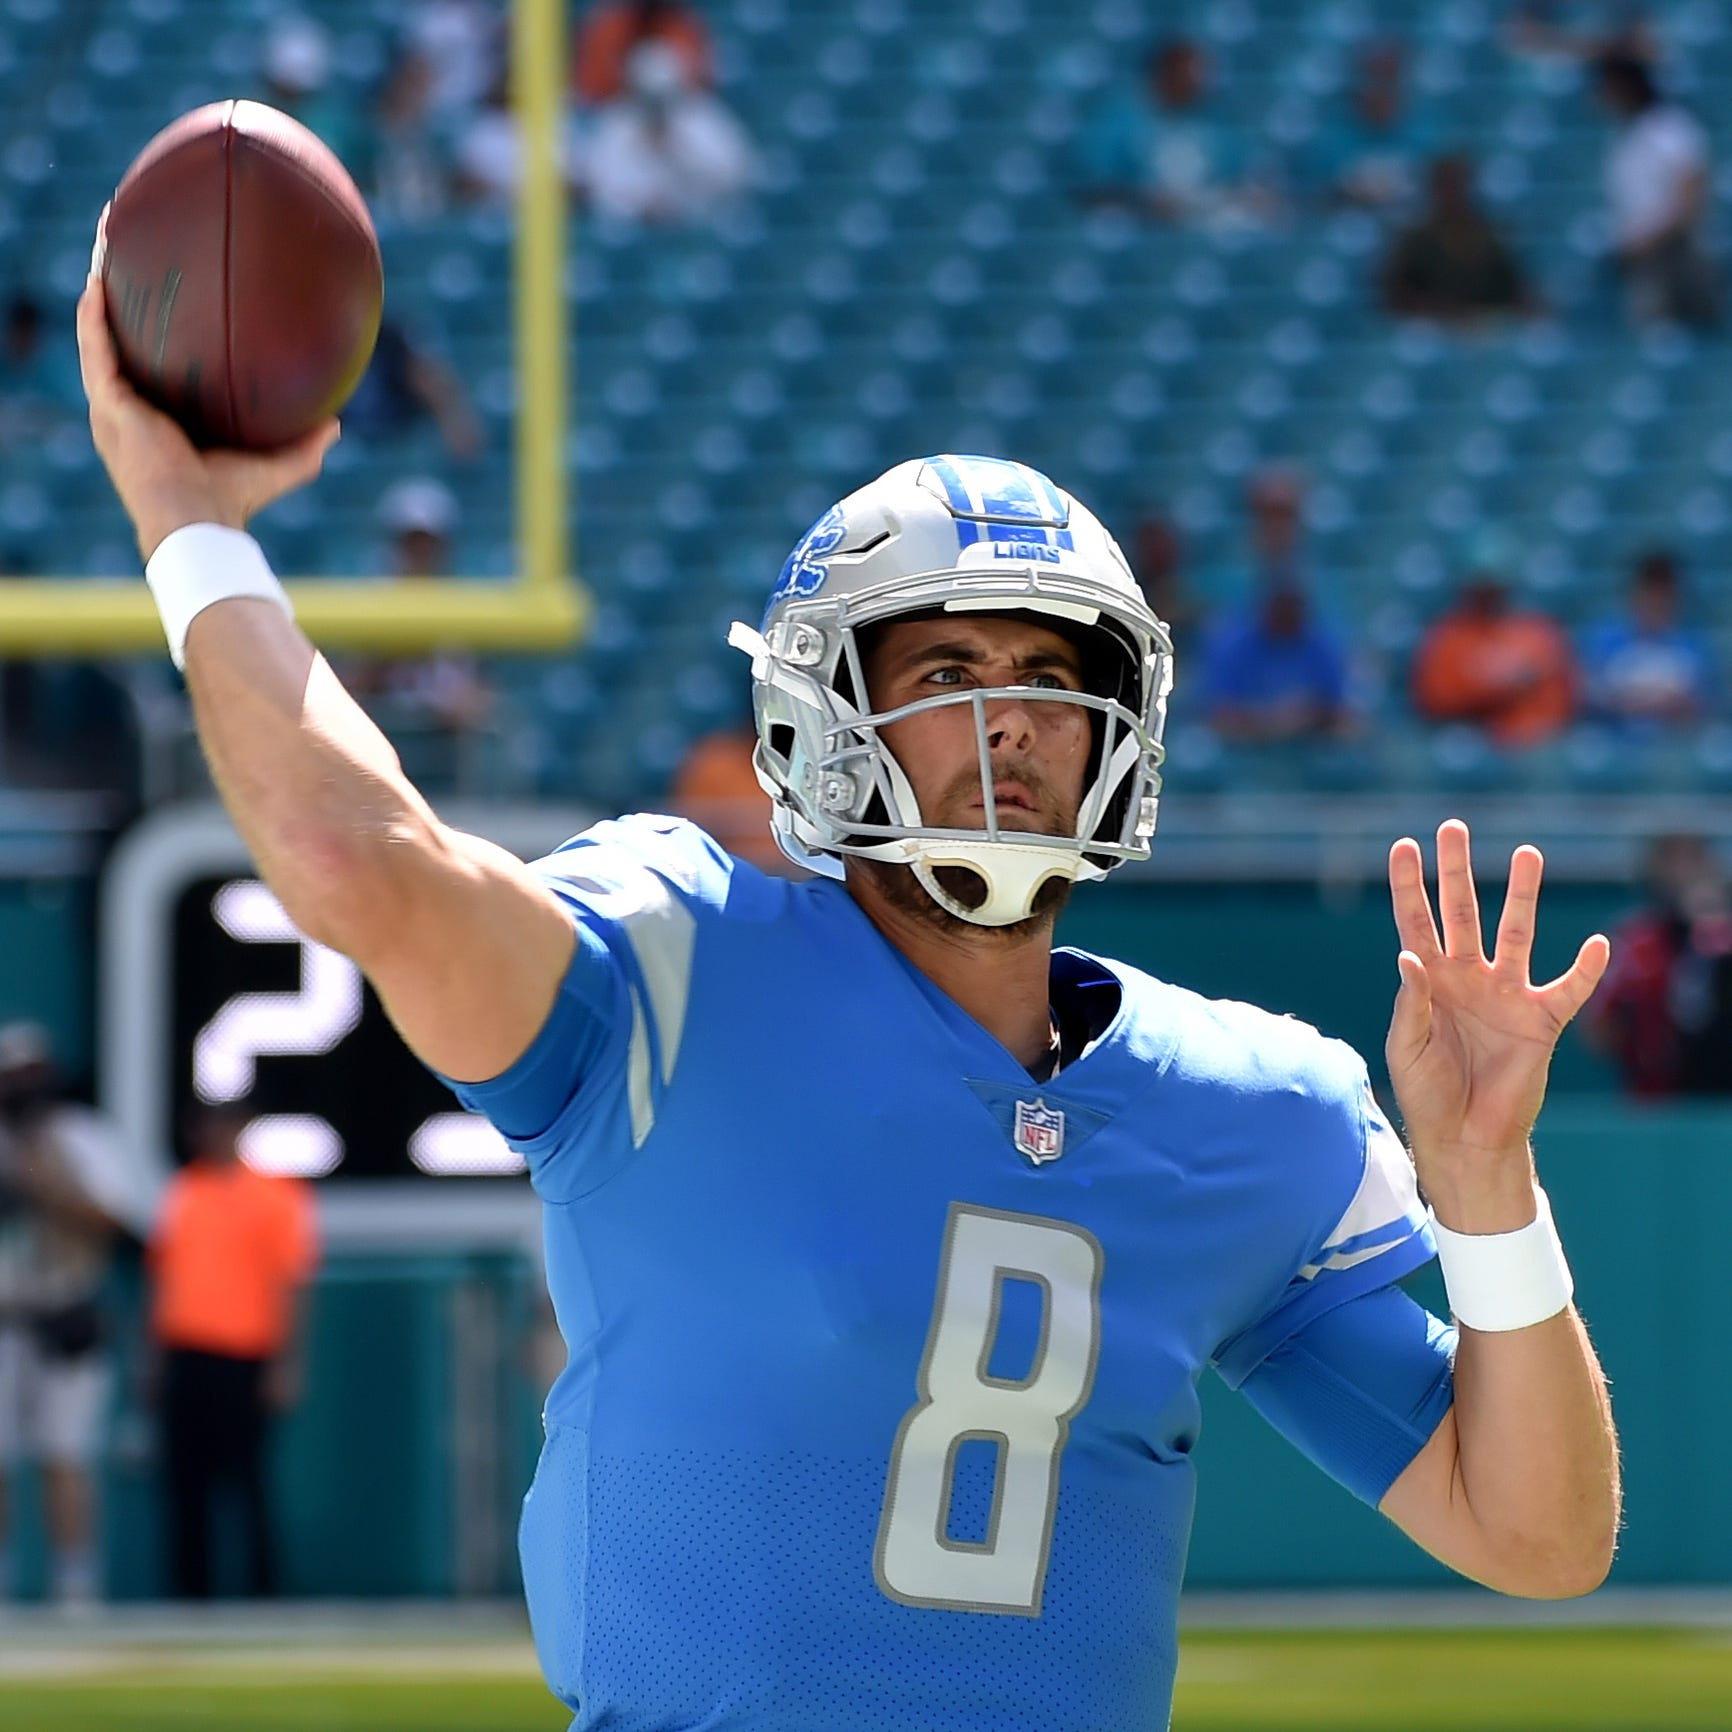 Detroit Lions need a backup QB. Matthew Stafford's contract makes it hard